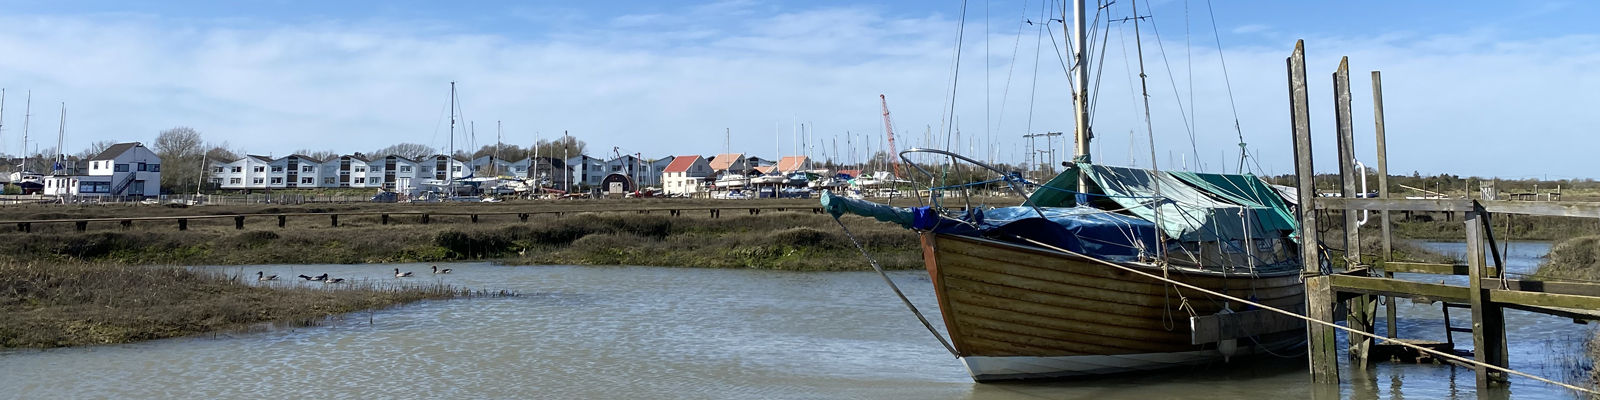 Tollesbury Parish Council, Our Parish Councillors, Boat Moored In Tollesbury Creek